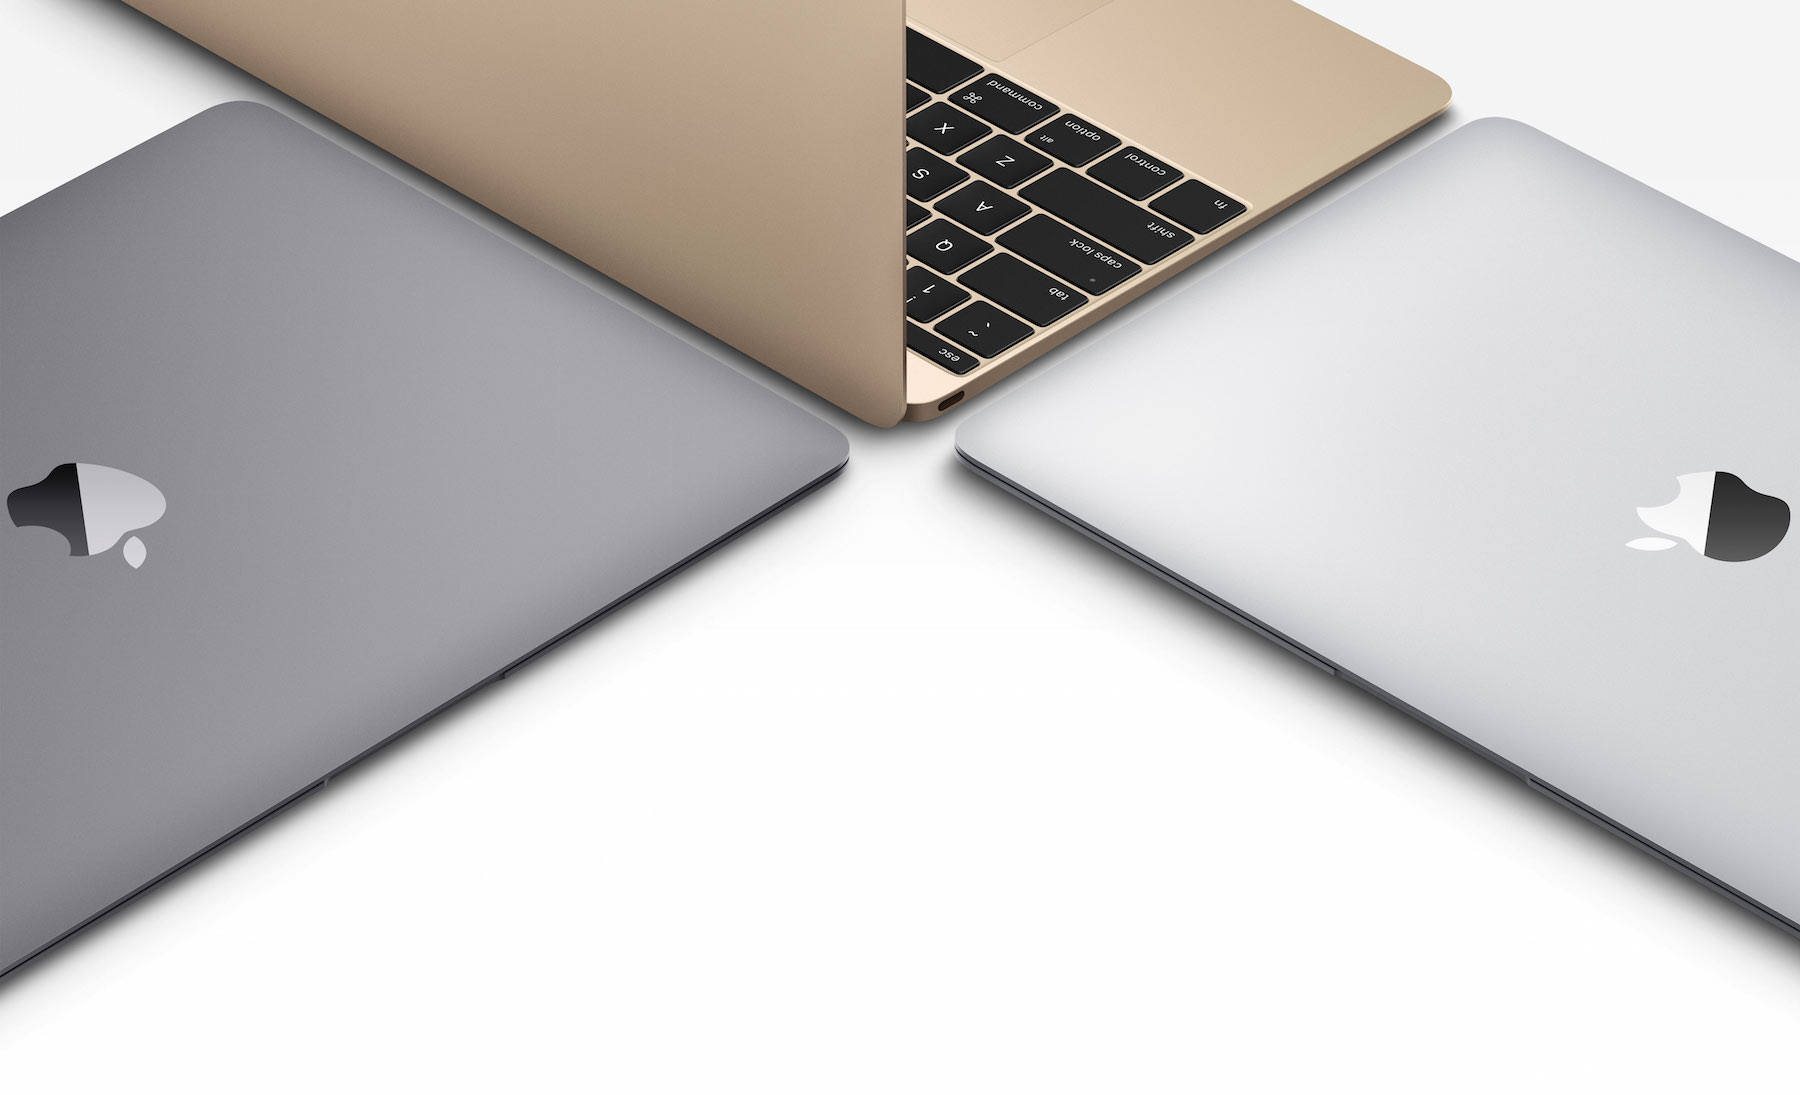 2015 New MacBook Pro HD Pictures 44 - ftopics.com